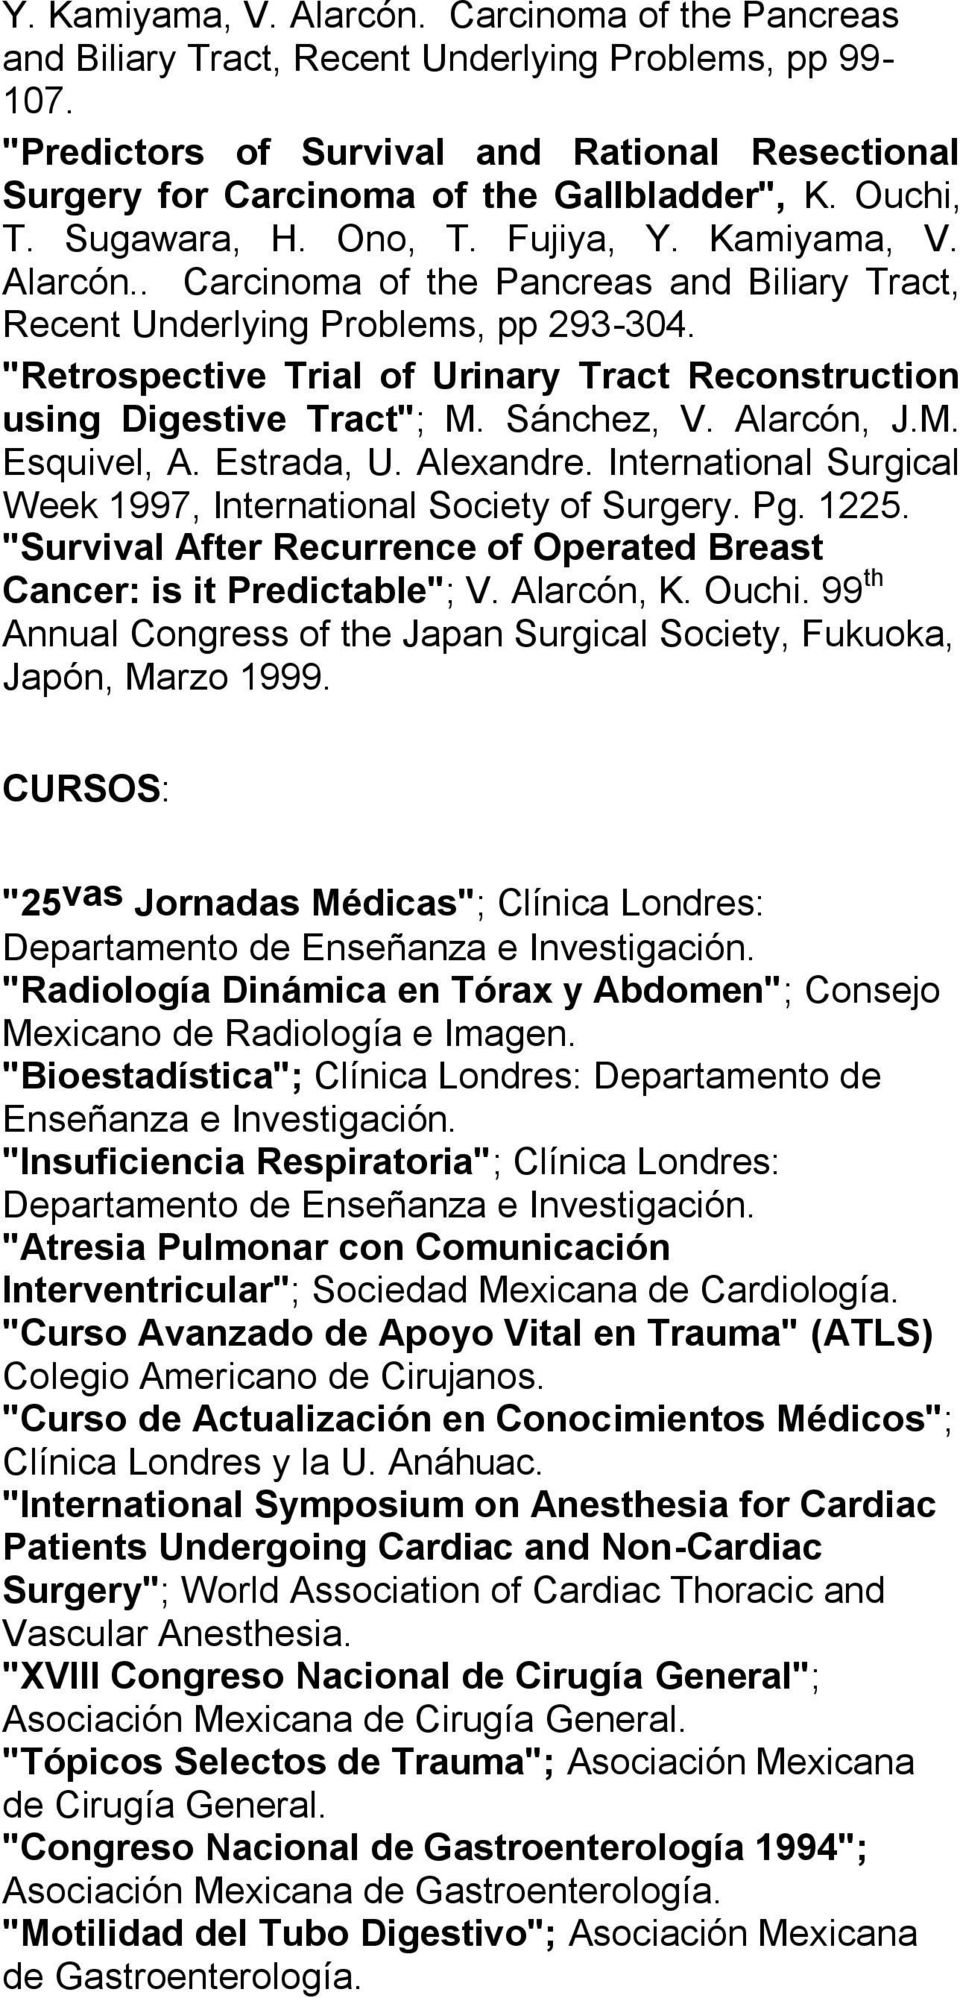 ". Carcinoma of the Pancreas and Biliary Tract, Recent Underlying Problems, pp 293-304. ""Retrospective Trial of Urinary Tract Reconstruction using Digestive Tract""; M. Sánchez, V. Alarcón, J.M. Esquivel, A."